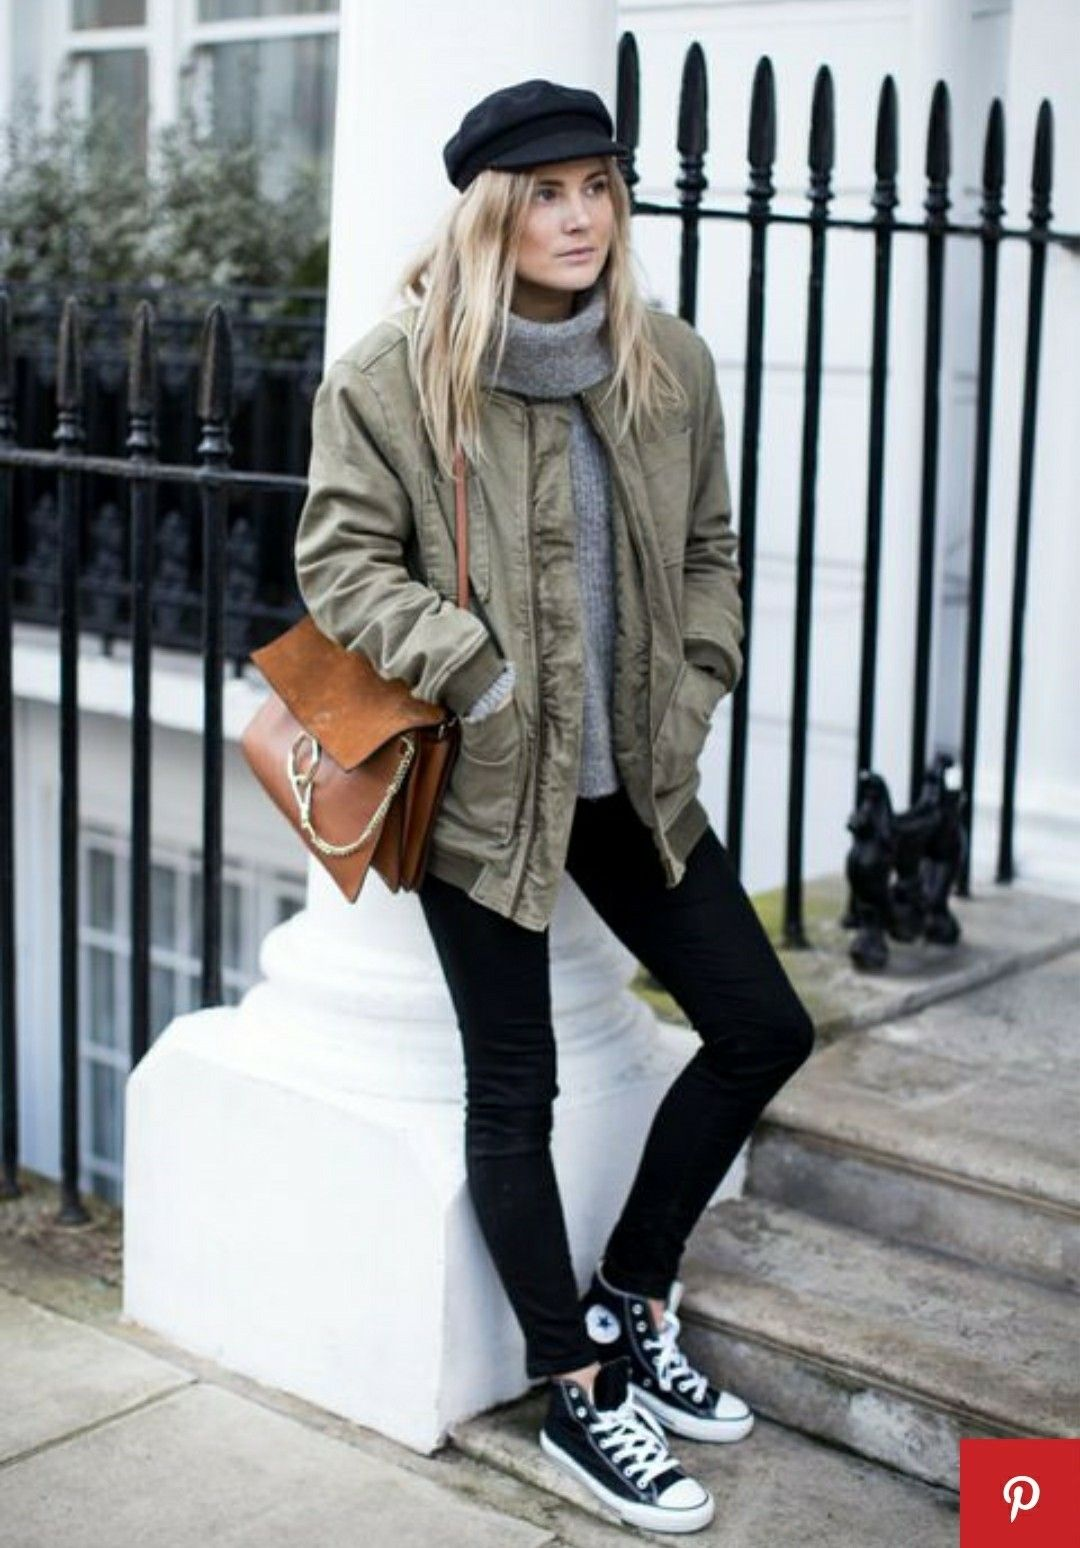 Pin by Sumerian on Fashion hits in 2019 | Fashion me now